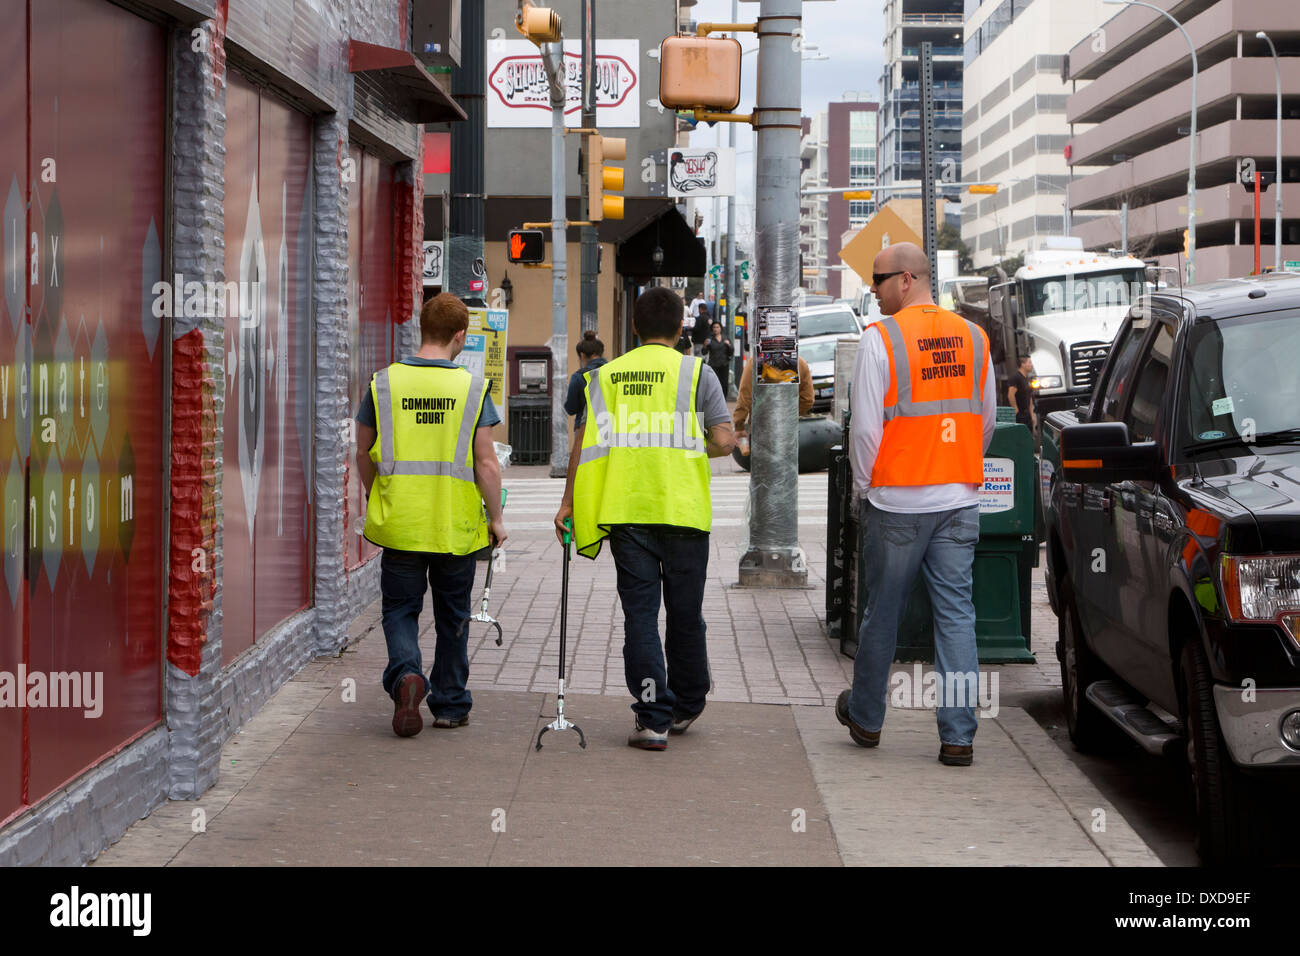 Young adult males use reach and pick-up tool to pick-up trash as part of their community service in downtown Austin, Texas - Stock Image